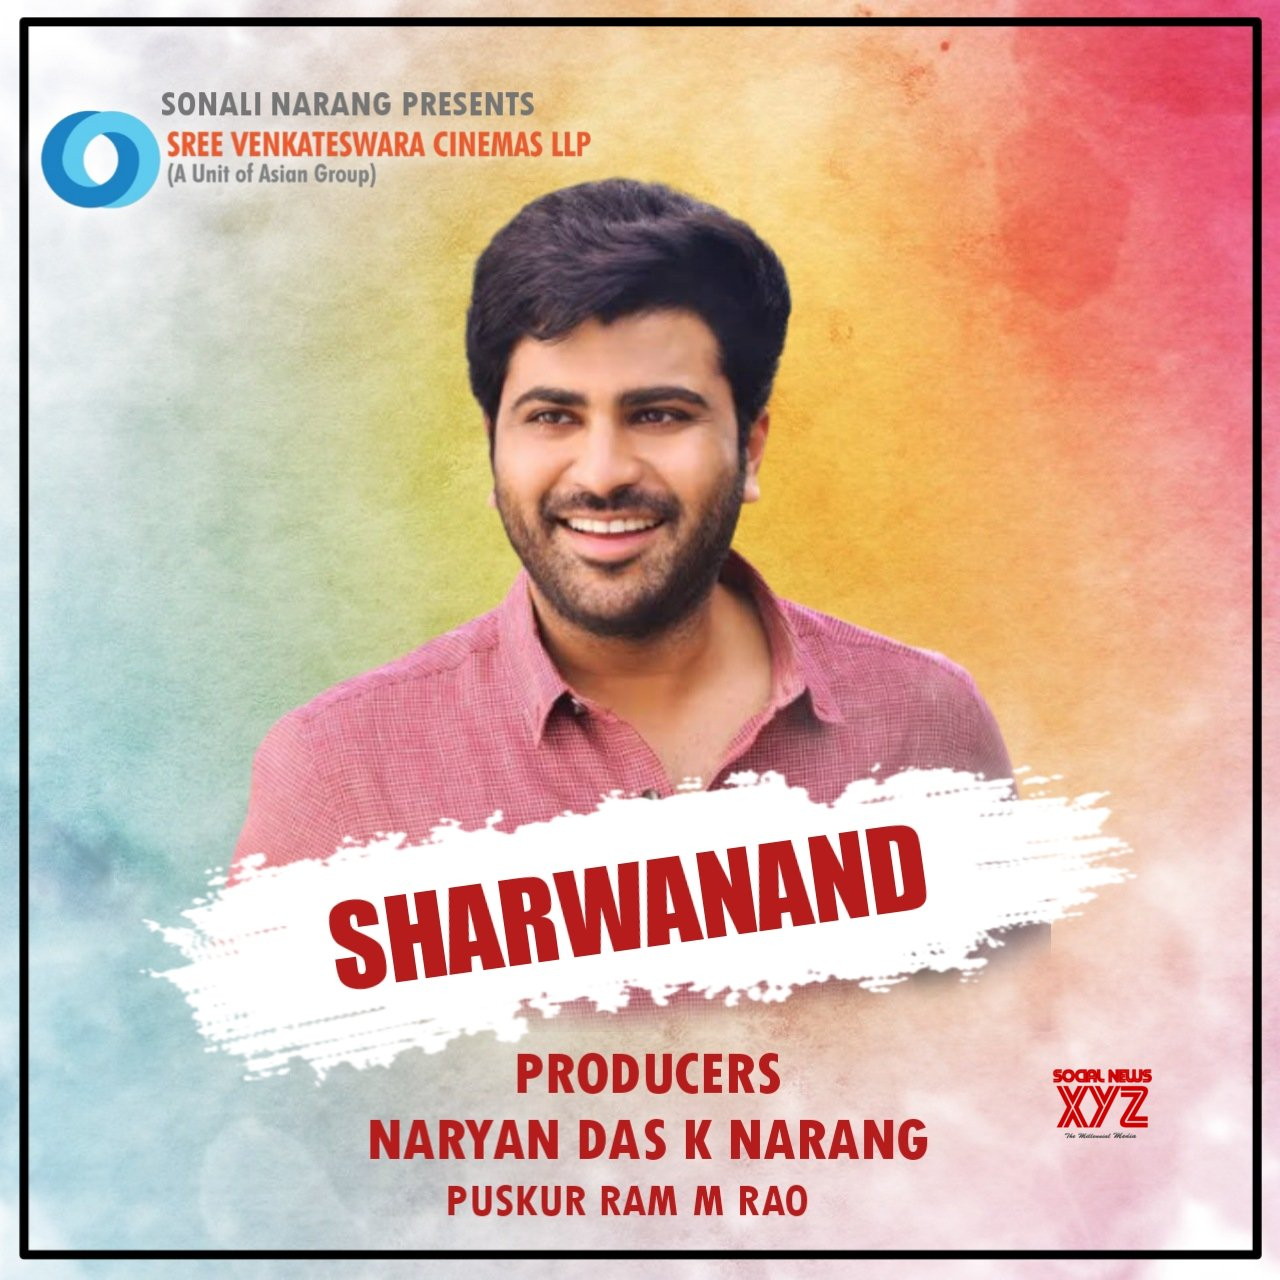 Sharwanand signs his next with a happening production house